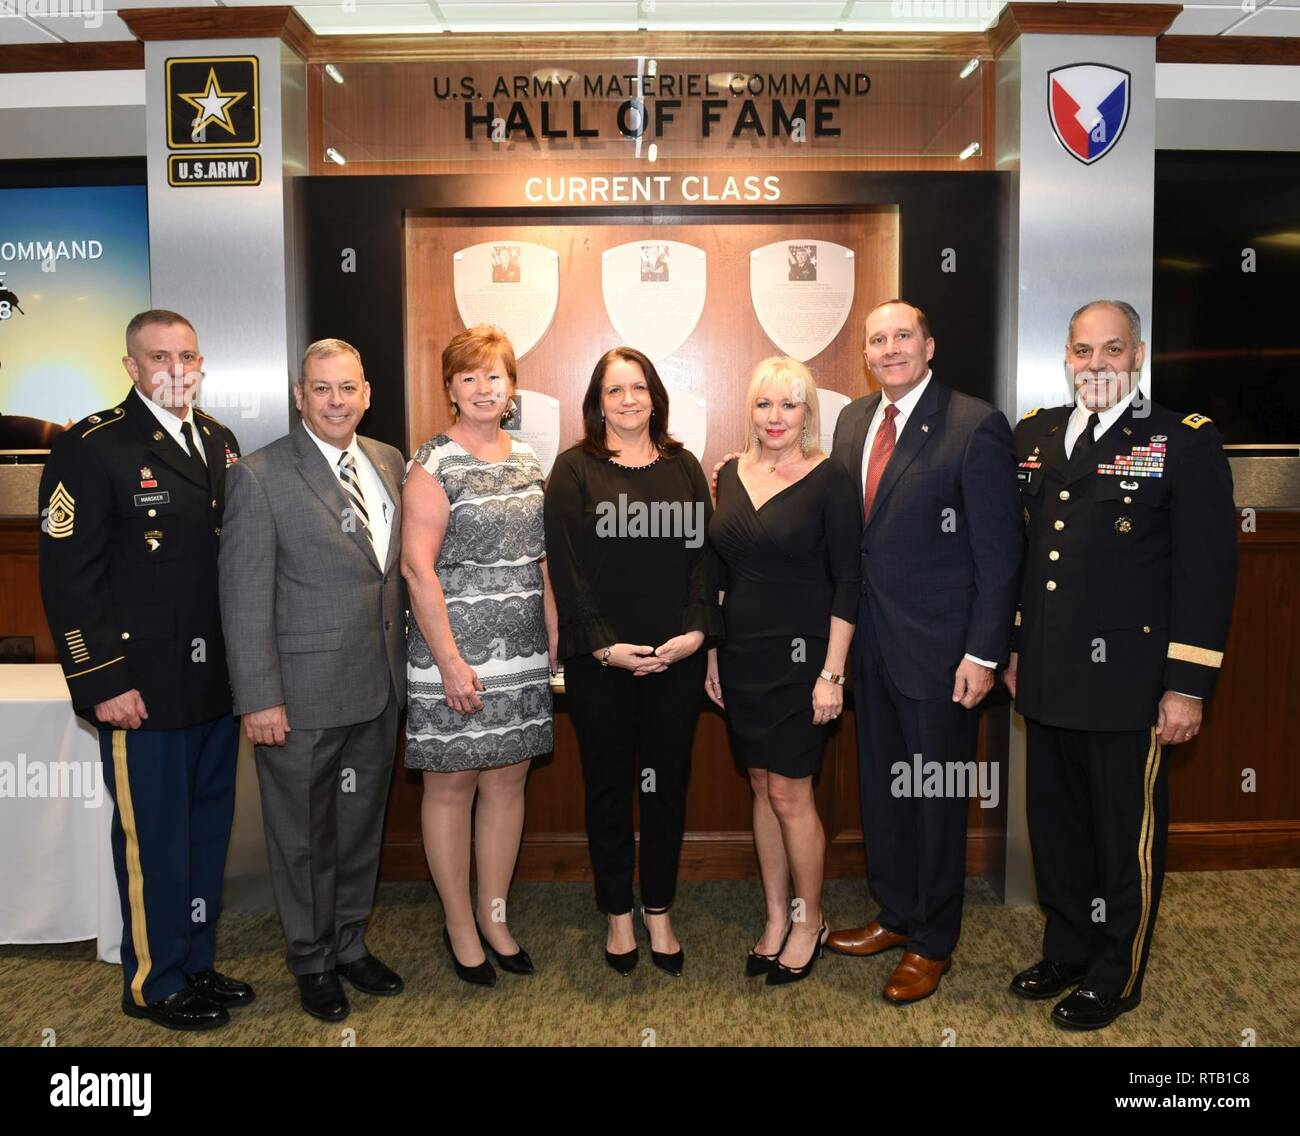 Retired Command Sergeants Major Daniel Elder, second from left, and Ronald Riling, second from right, are honored at an Army Materiel Command Hall of Fame Induction Ceremony Feb. 5 at AMC headquarters, Redstone Arsenal, Ala. With them are, from left, AMC Command Sgt. Maj. Rodger Mansker, Gloria Elder, Susan Perna, Melinda Riling and AMC commander Gen. Gus Perna, who hosted the ceremony. - Stock Image